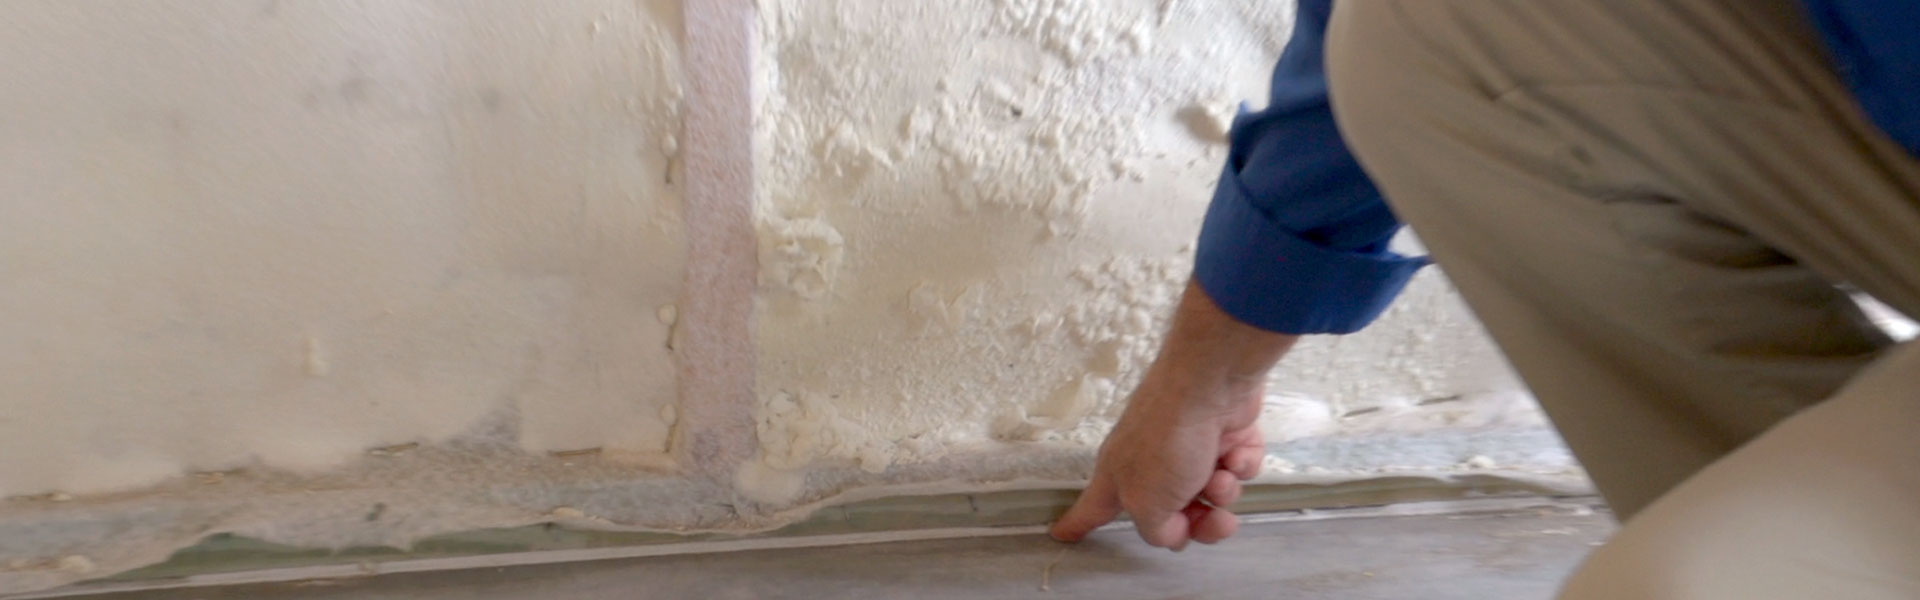 Spray foam sealing - just one way a TerraWise Home earns low HERS score.